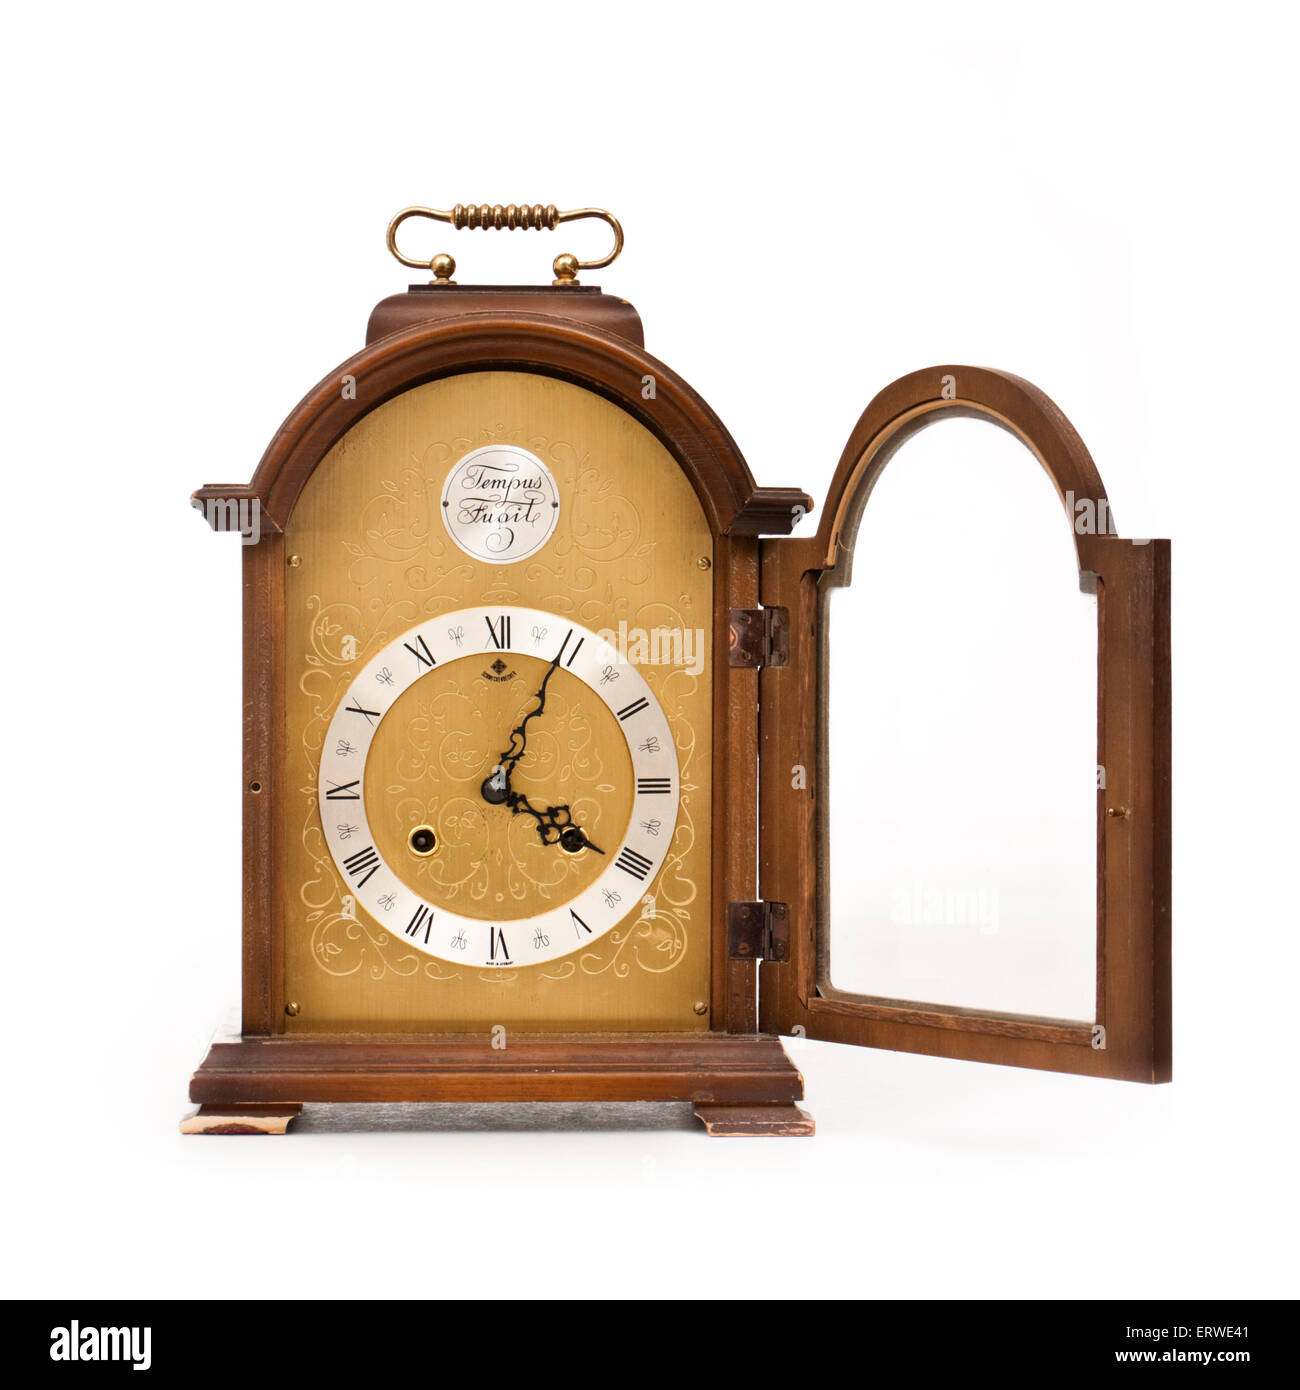 Vintage (1975) 'Tempus Fugit' (Latin for 'Time Flies') mantel clock by Emil Schmeckenbecher (West - Stock Image